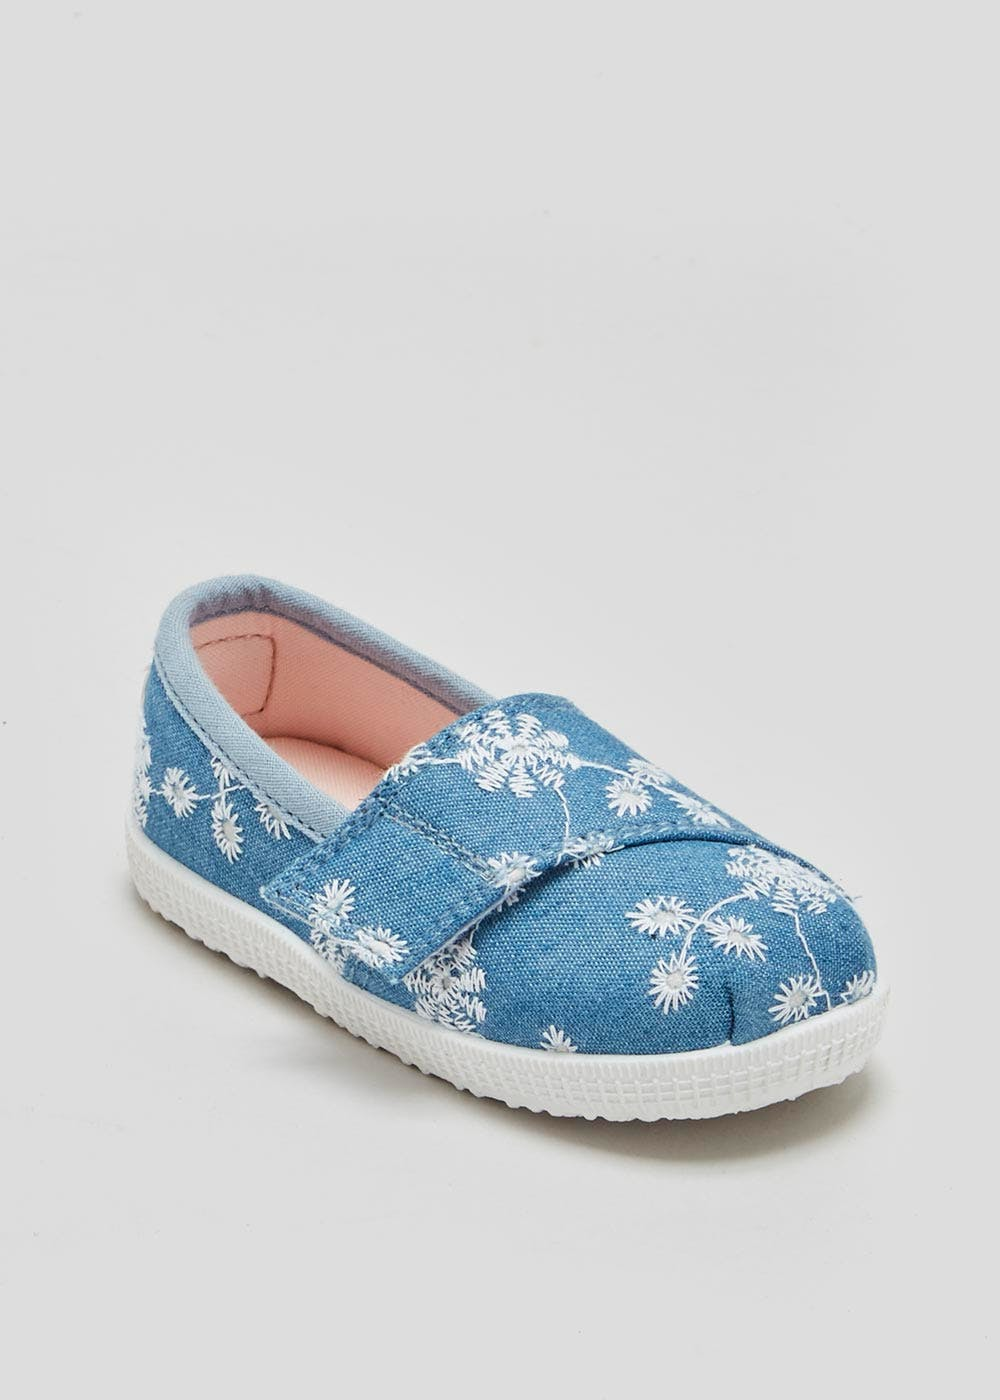 Girls Soft Sole Embroidered Pre-Walker